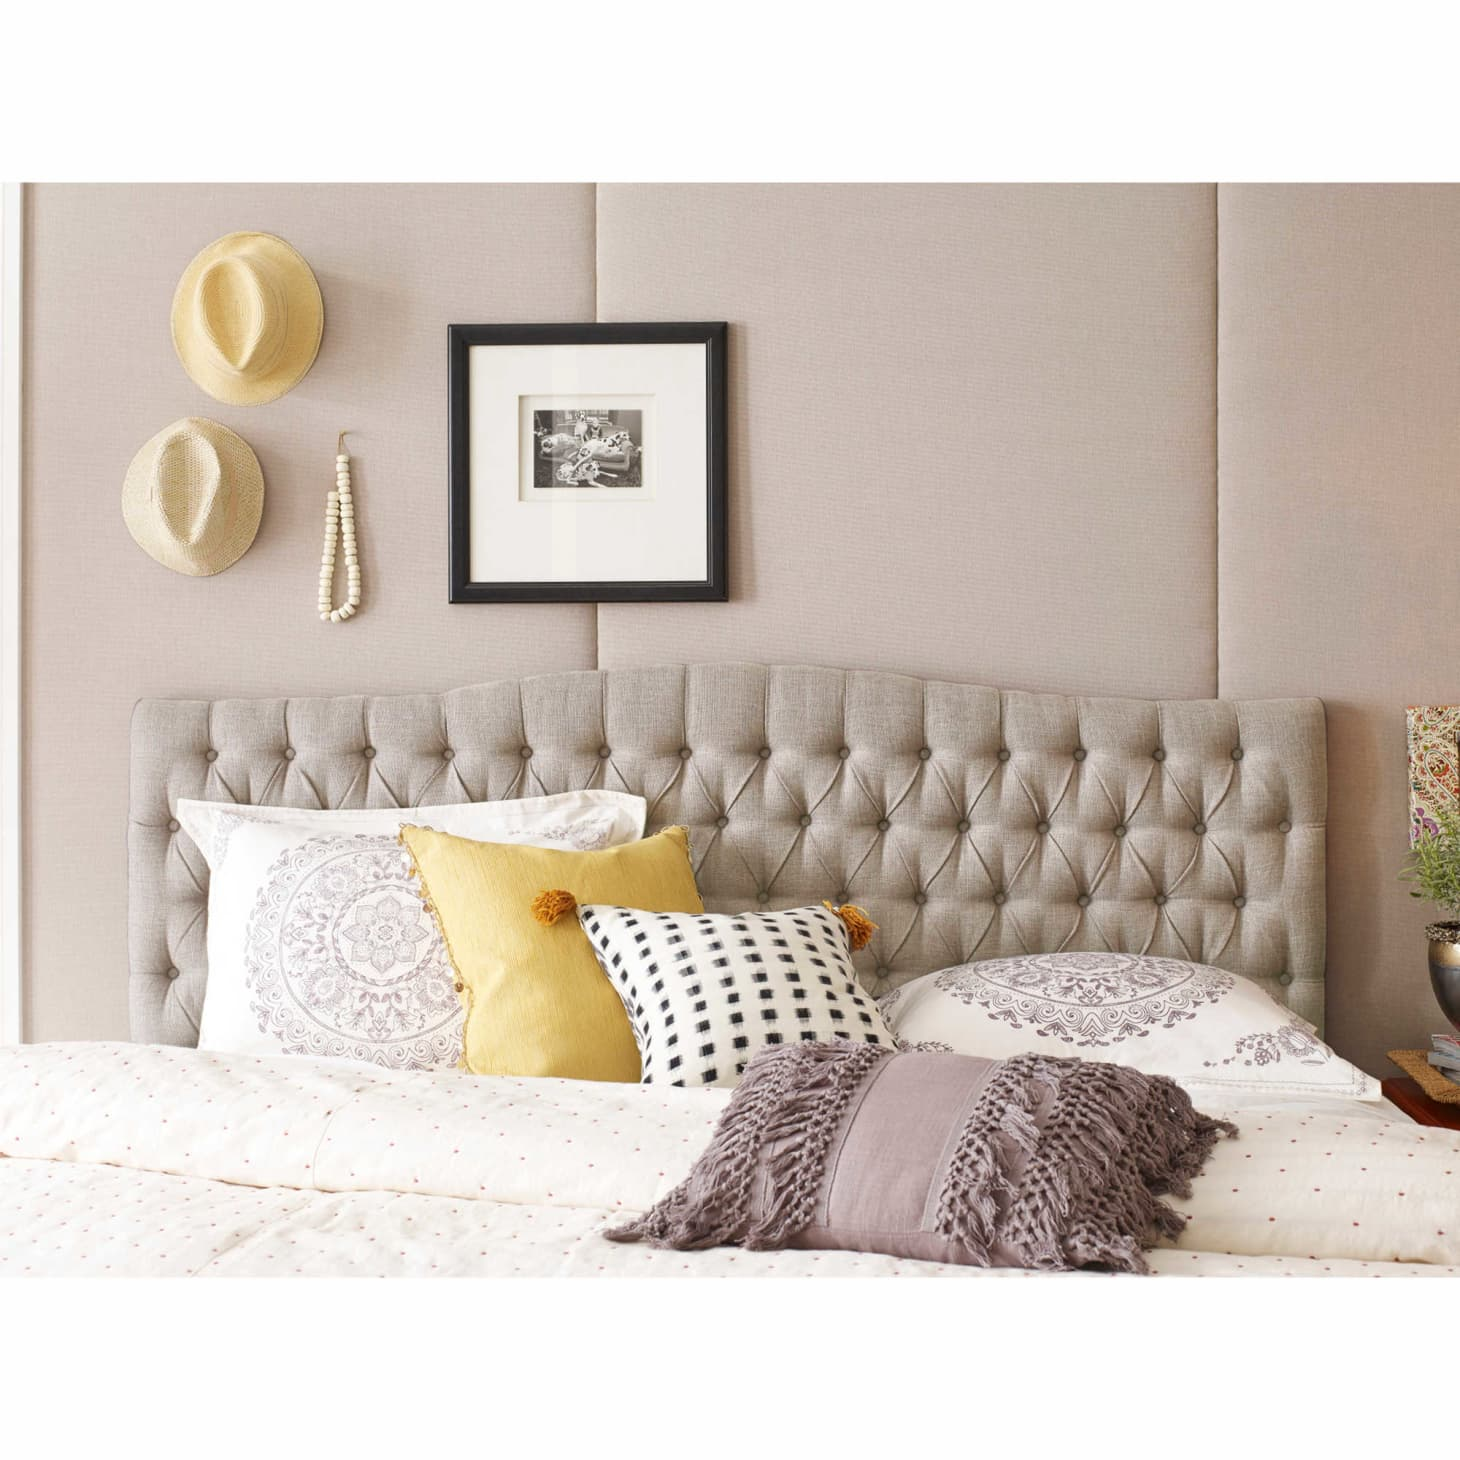 Pleasing The Best Furniture Finds At Bed Bath Beyond Apartment Gmtry Best Dining Table And Chair Ideas Images Gmtryco